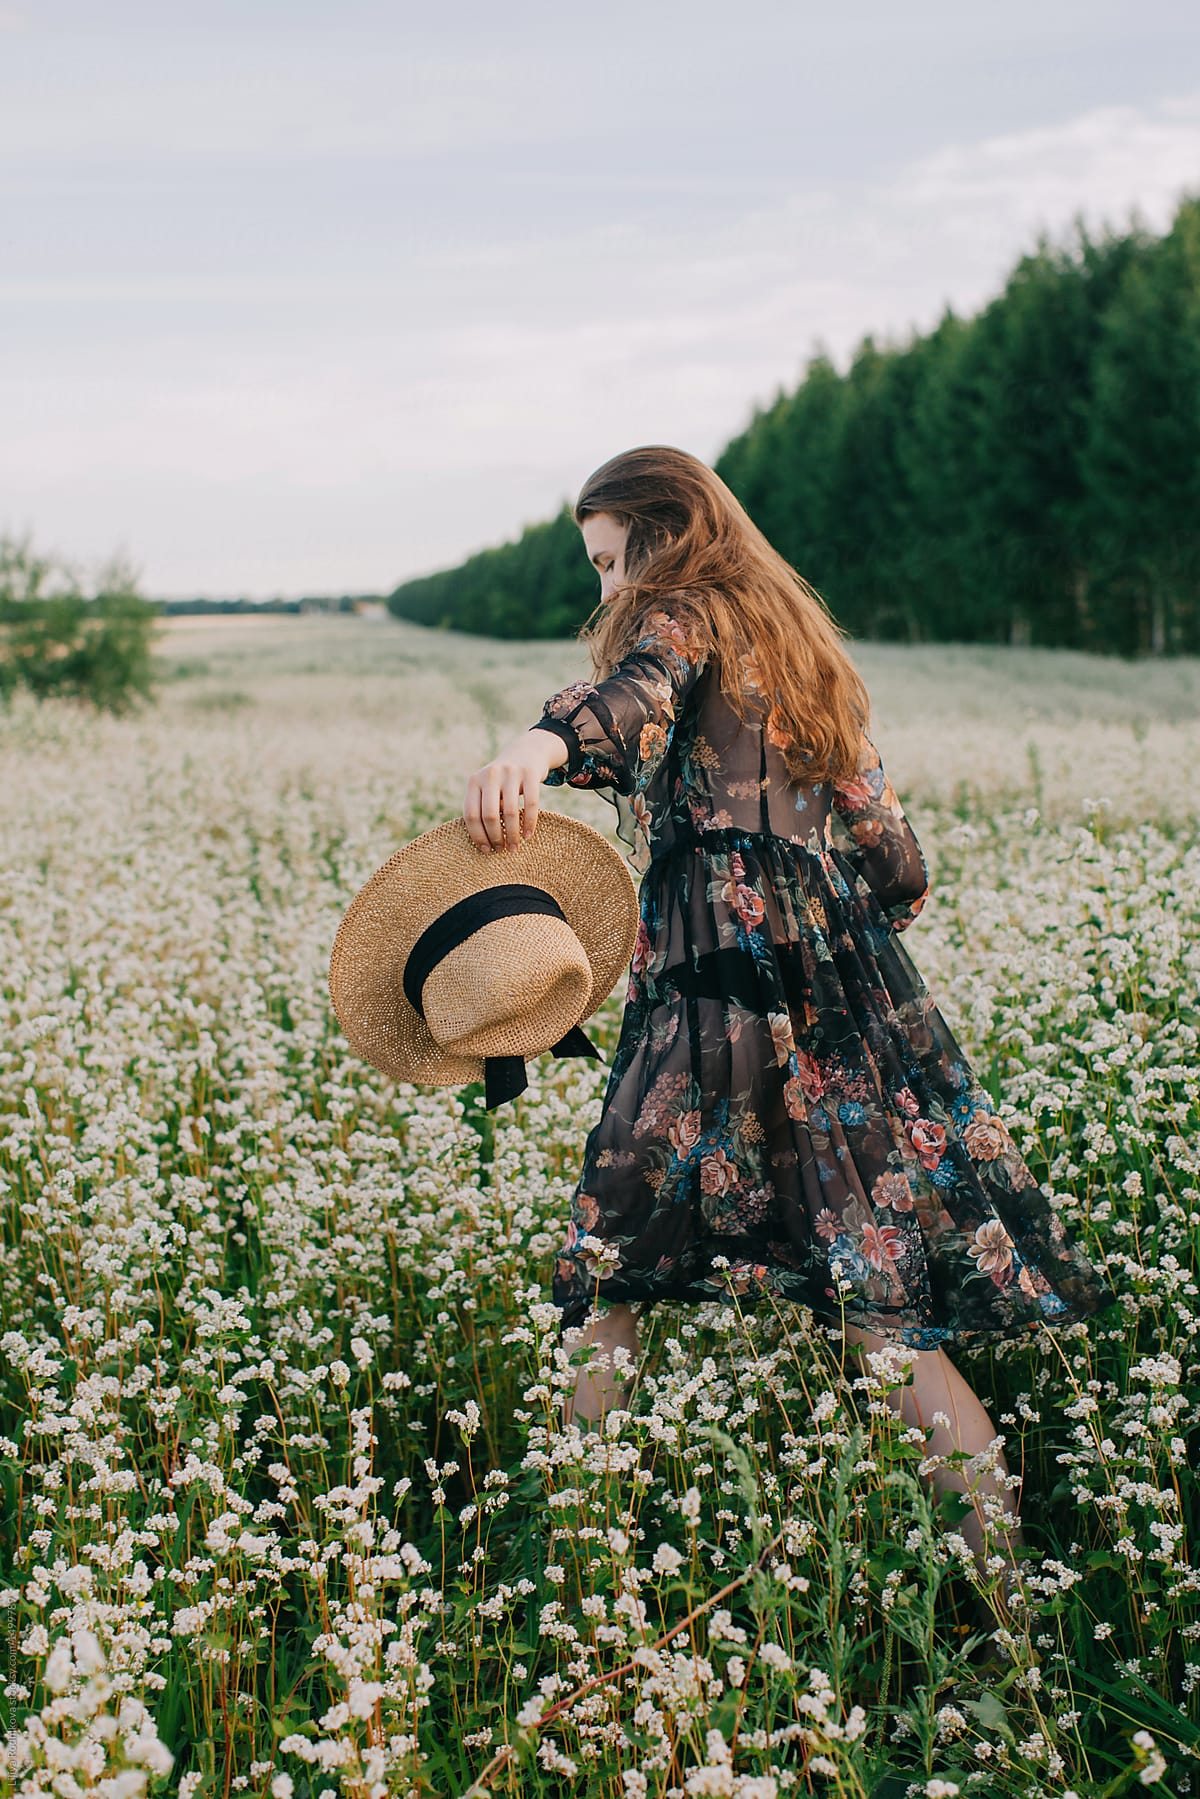 Back View Portrait Of Young Fashionable Female Walking Through The